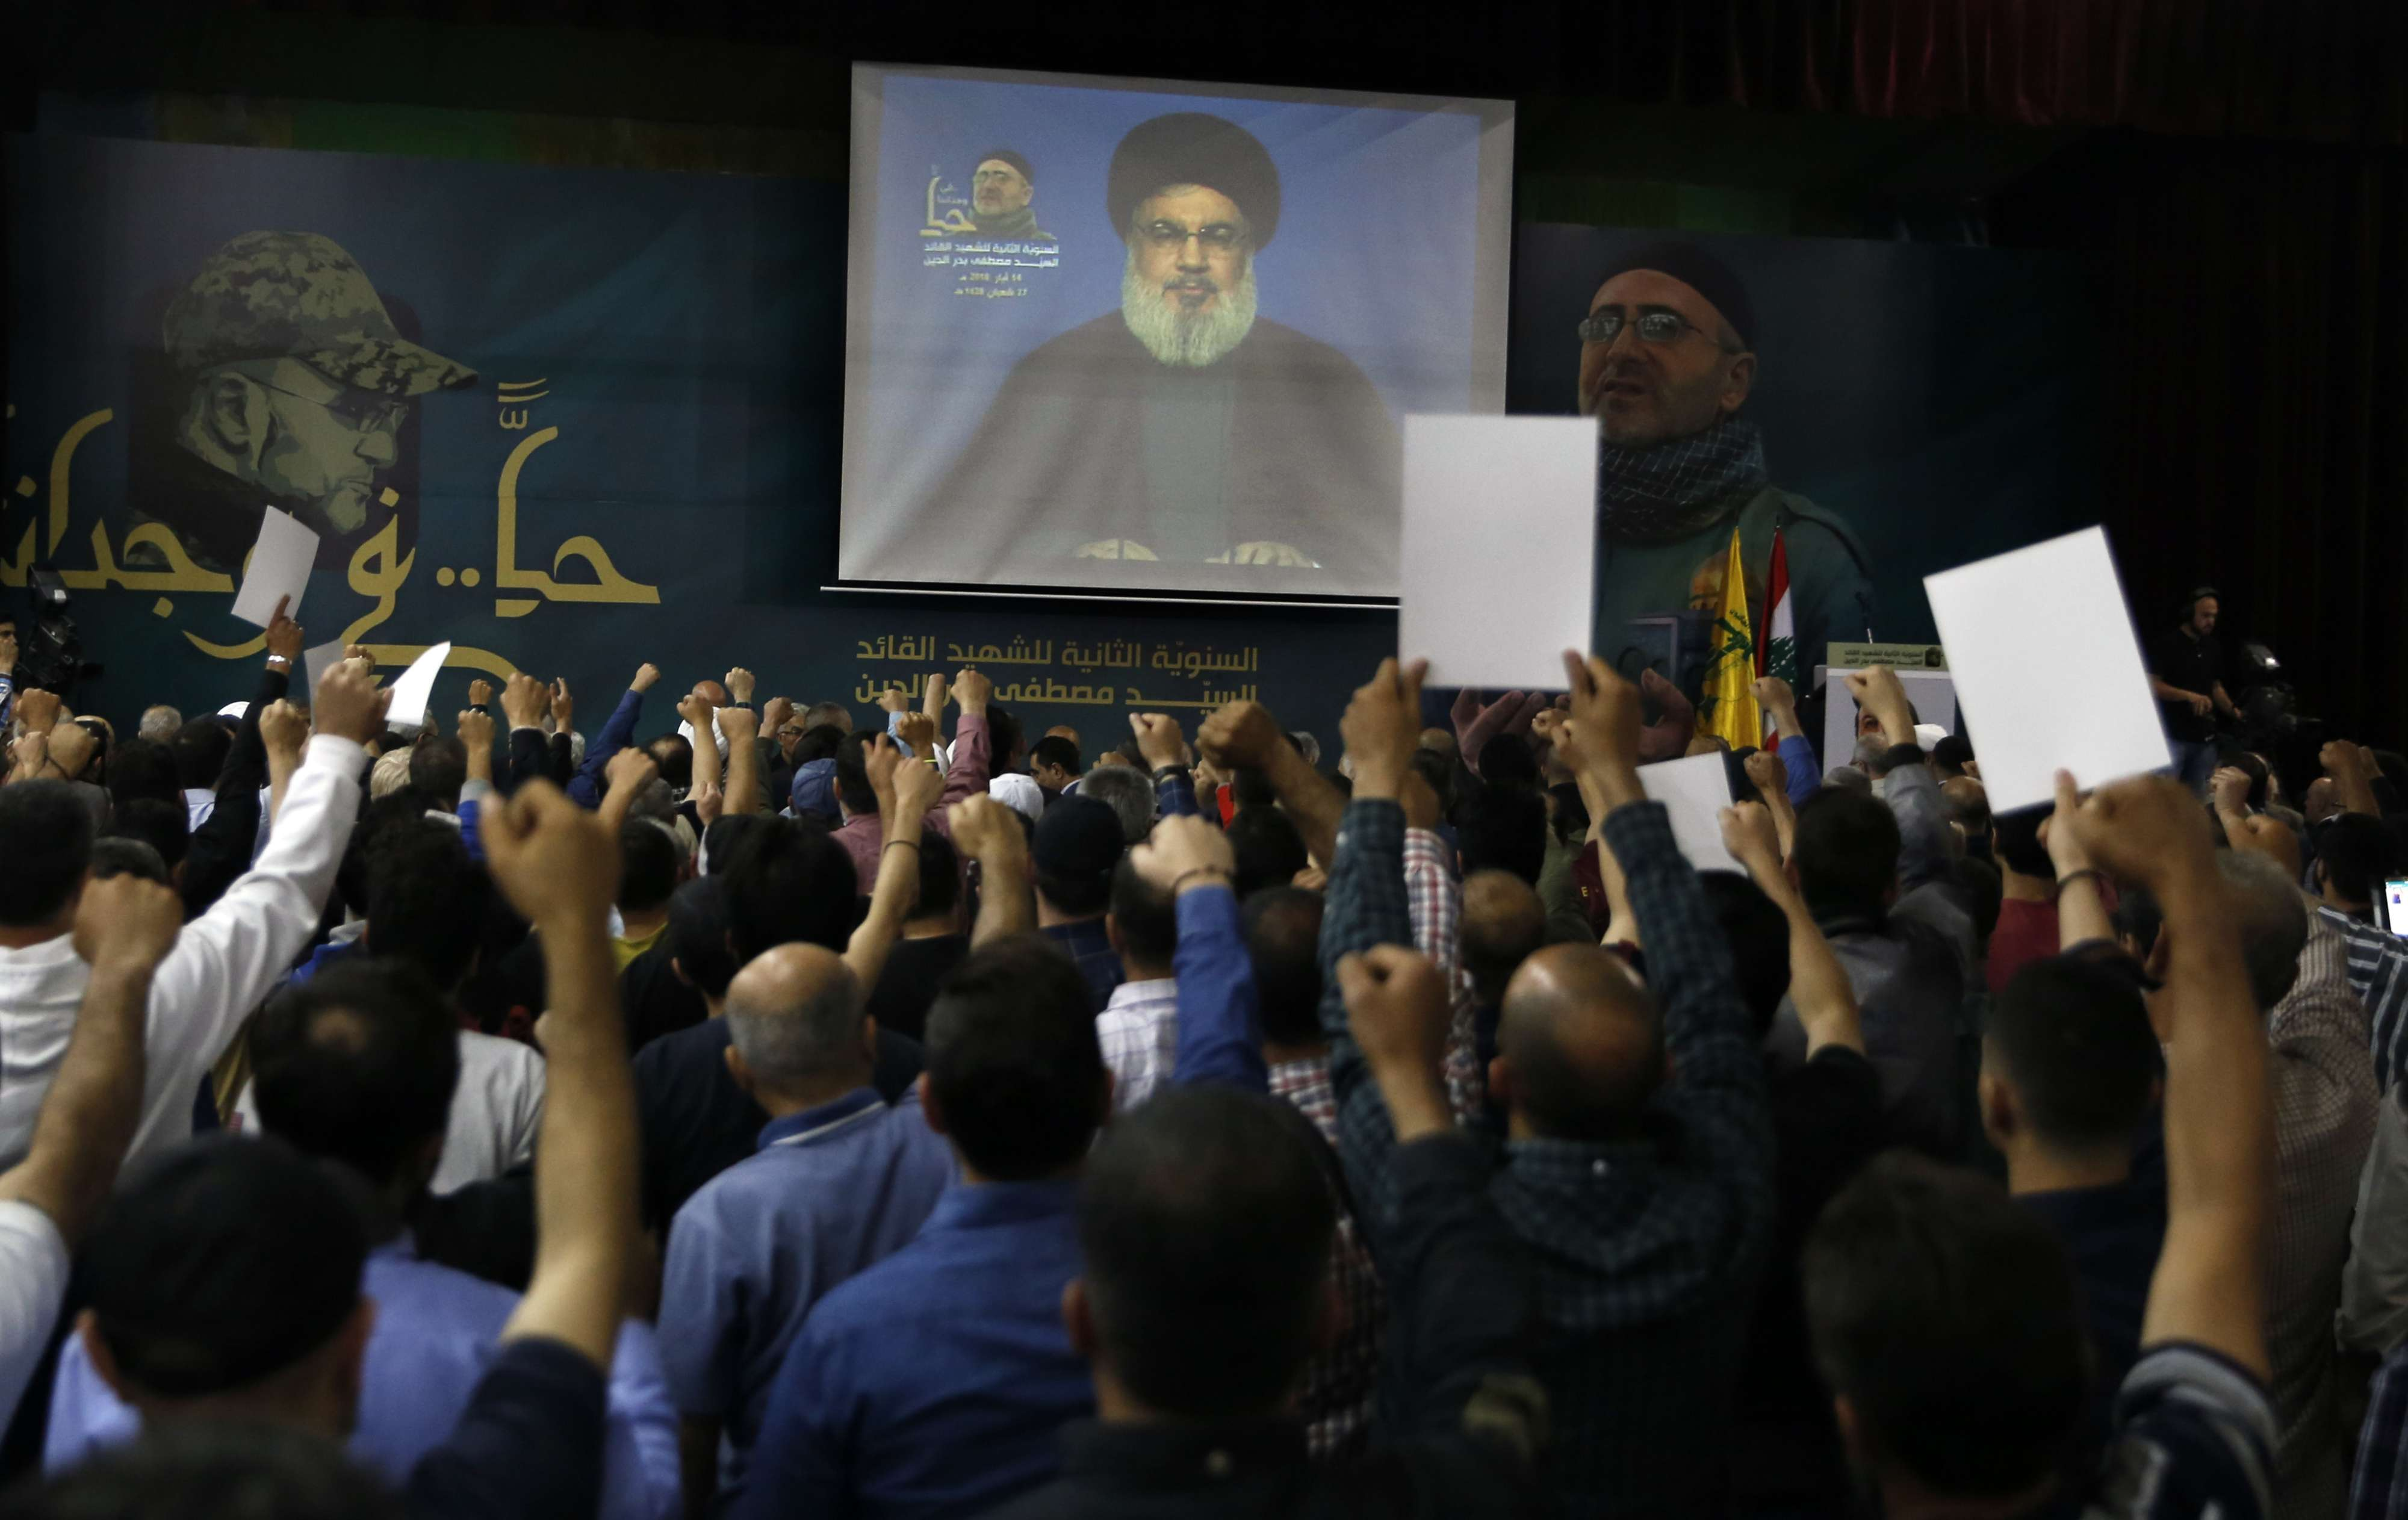 Lebanon's Hezbollah leader Hassan Nasrallah speaks on a screen via a video link in the southern suburbs of Beirut, on May 14. (AP)